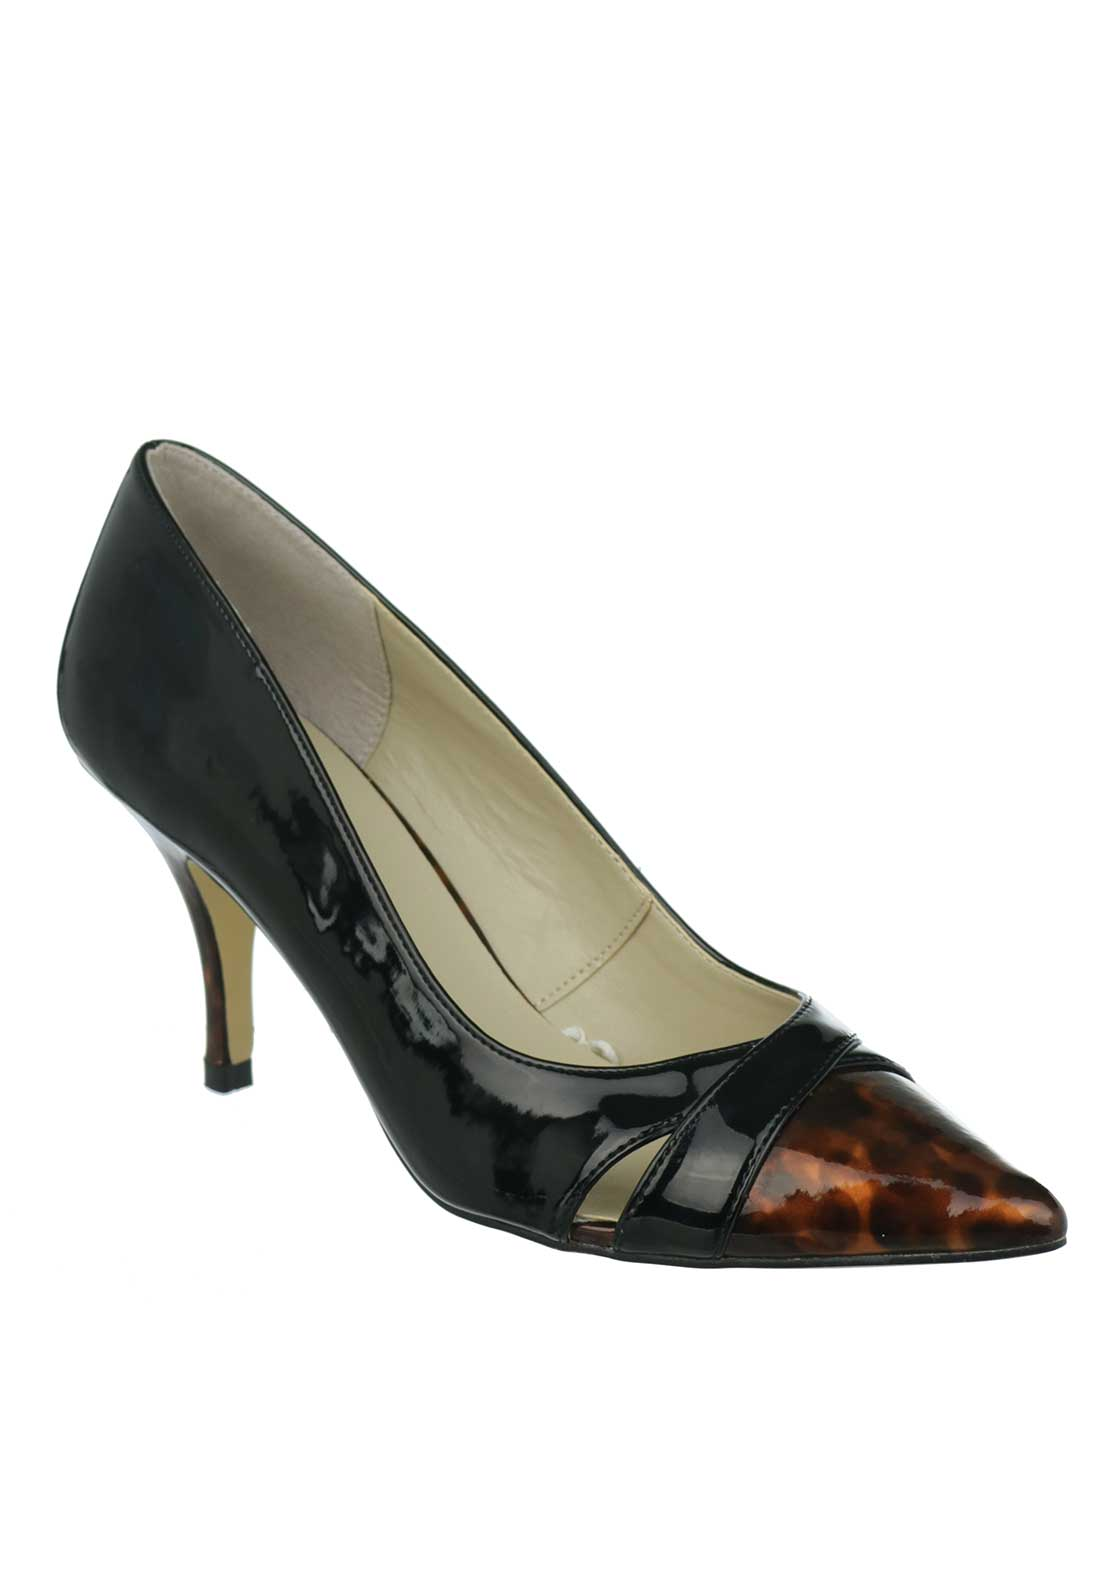 Lotus Celosia Tortoise Print Trim Pointed Toe Mid Heel Shoe, Black Patent